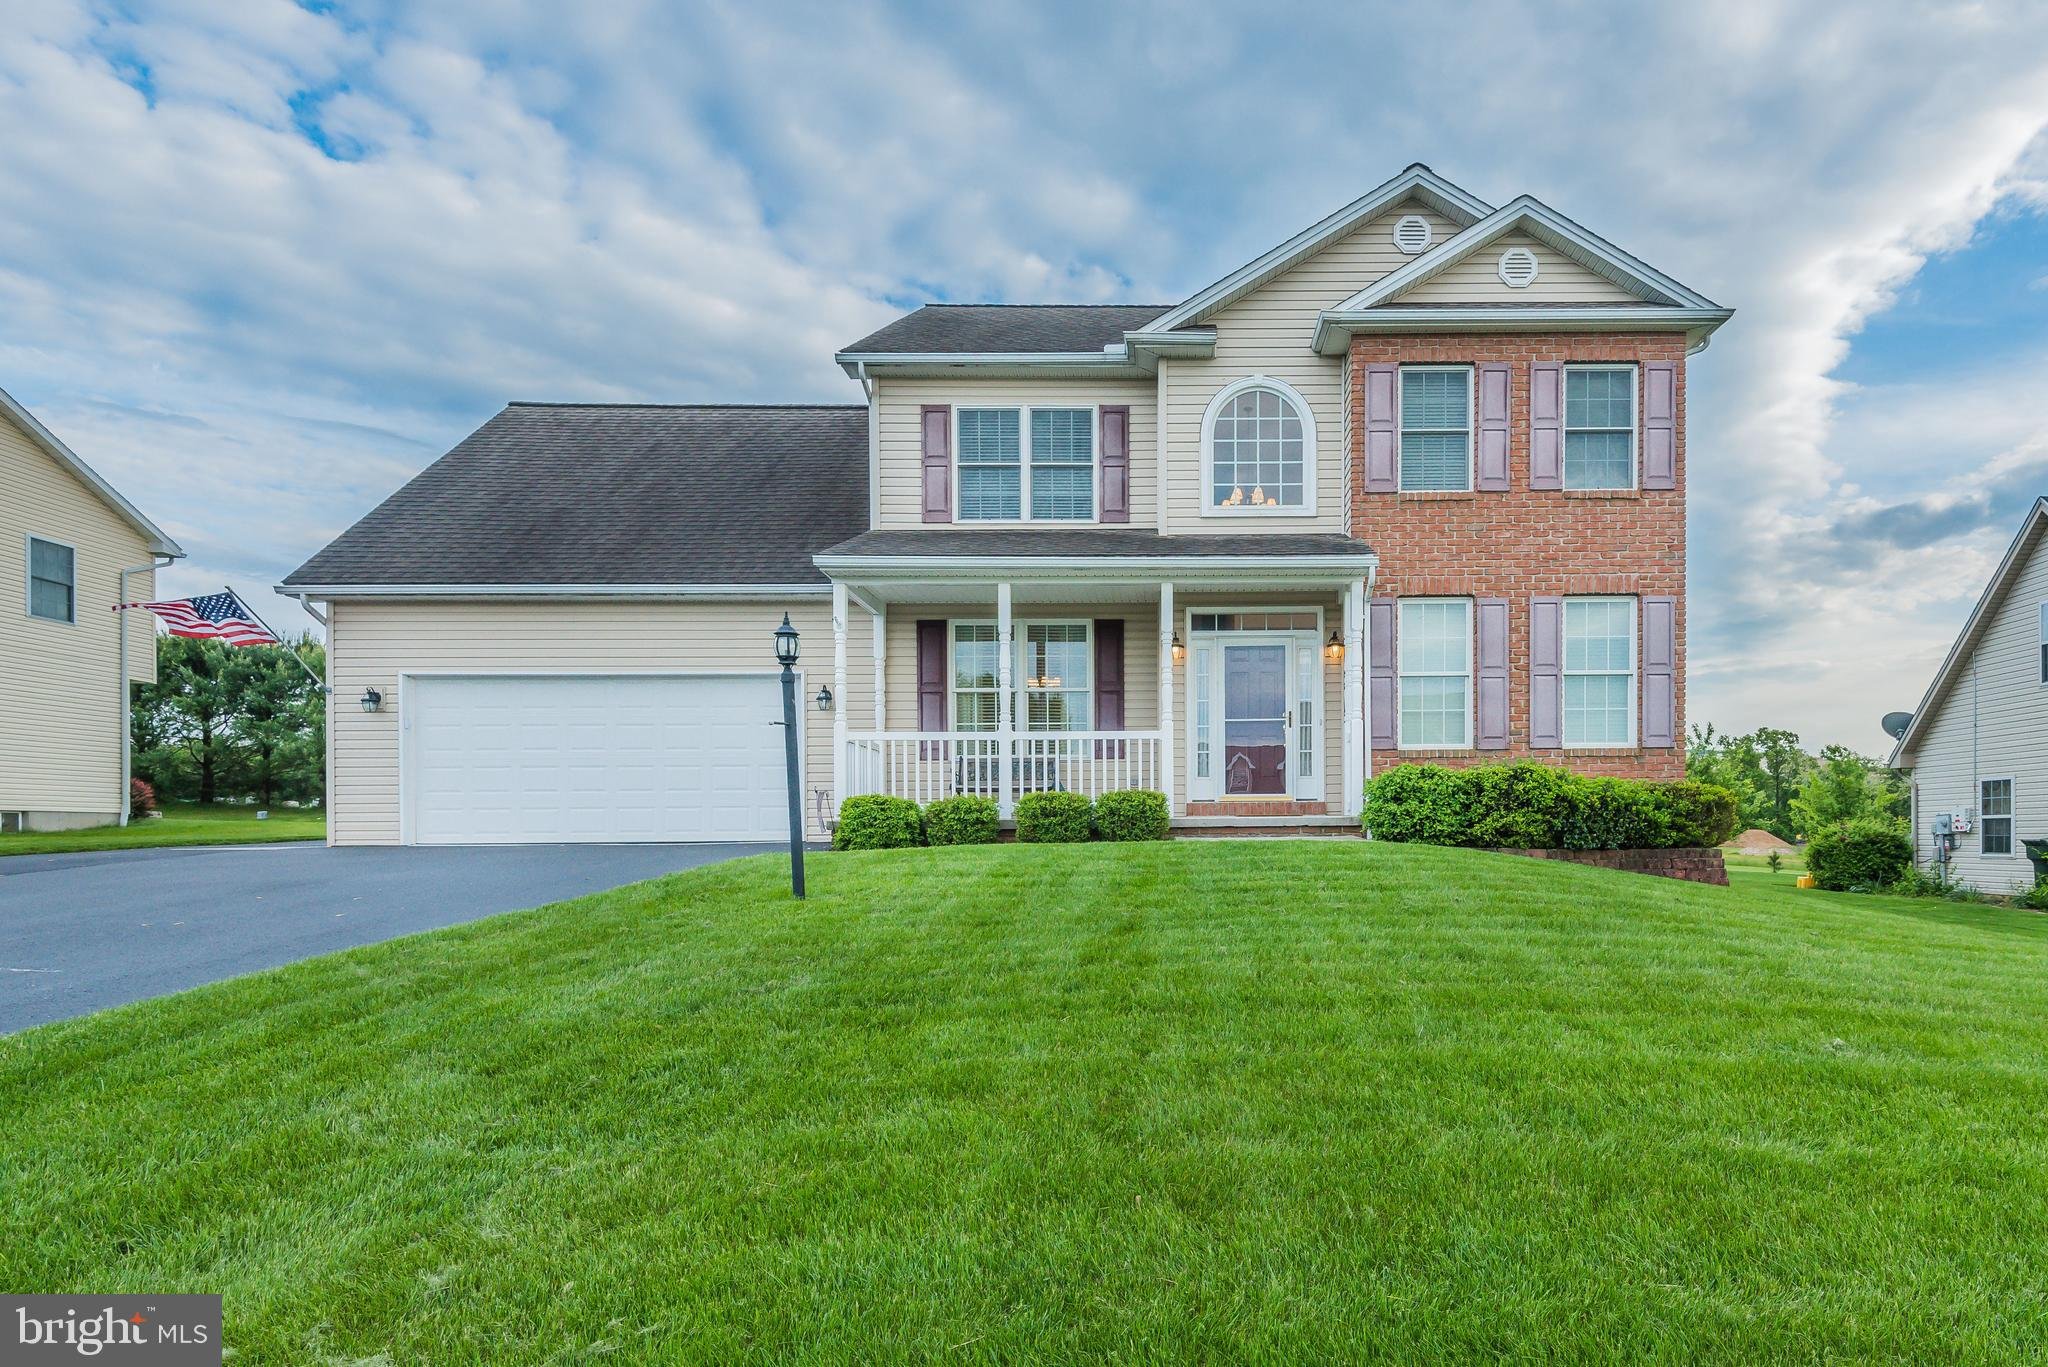 103 HILLTOP DRIVE, MOUNT HOLLY SPRINGS, PA 17065